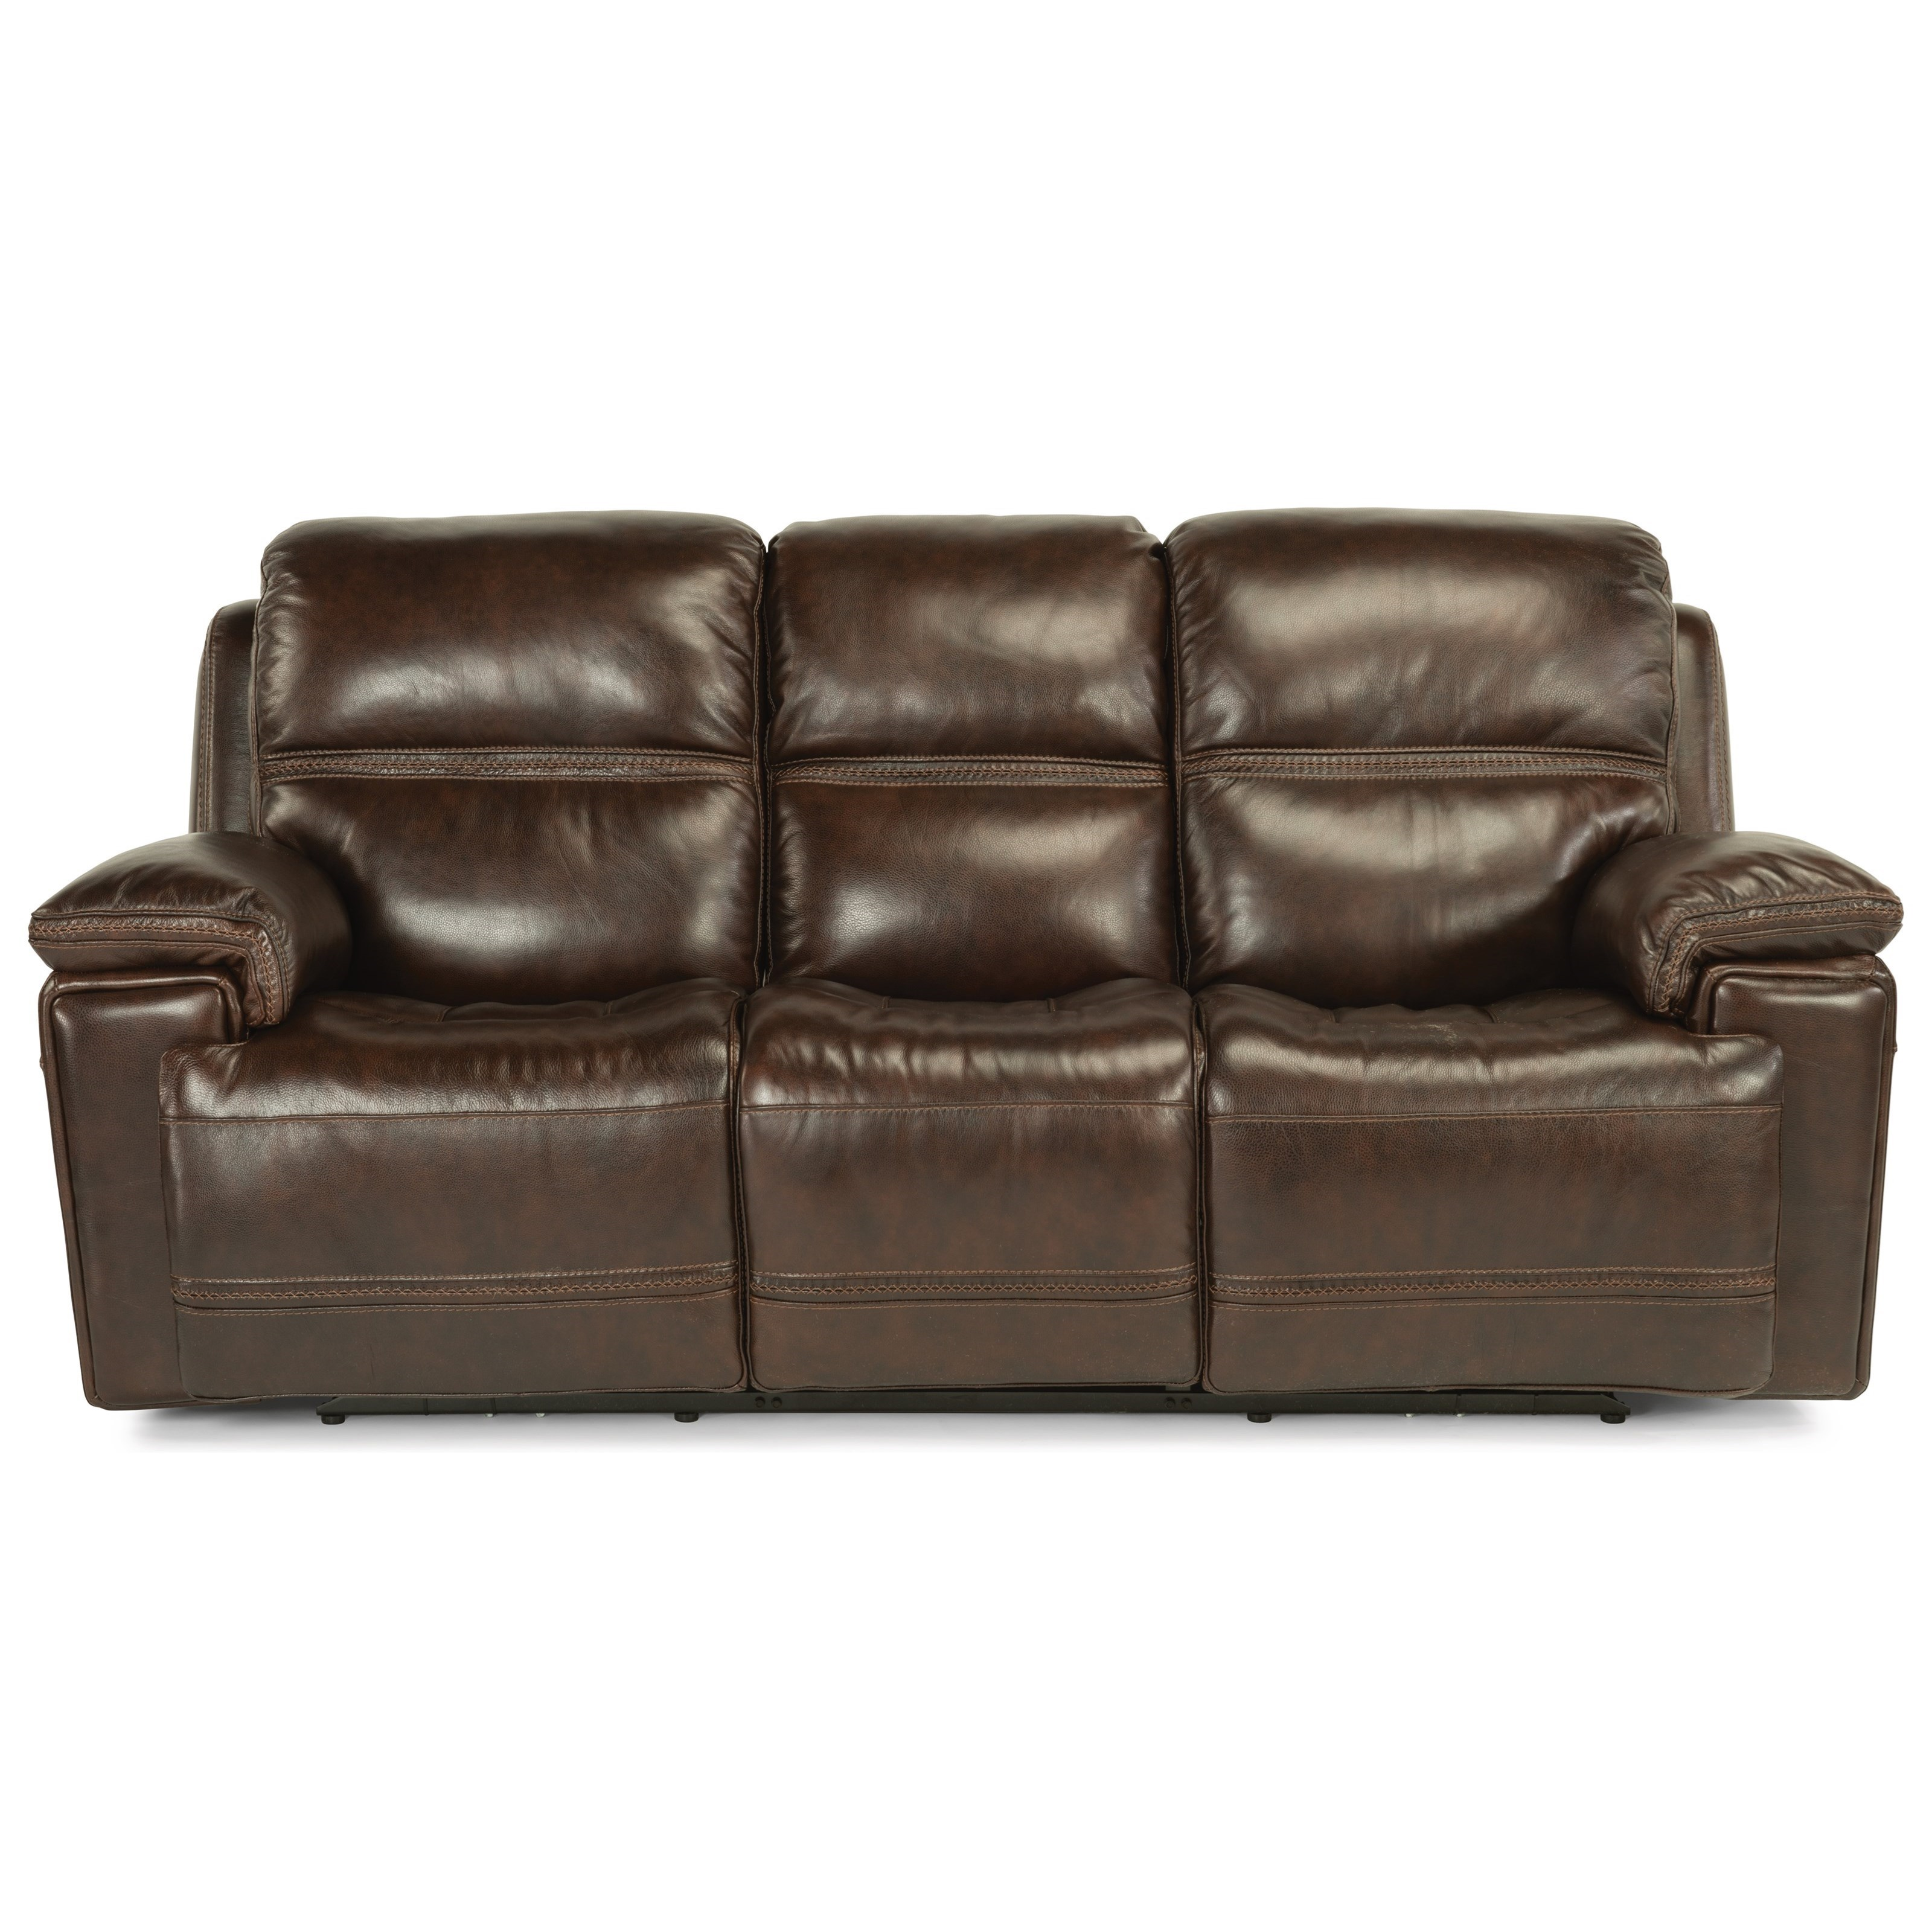 Latitudes-Fenwick Power Rcl Sofa w/ Pwr Headrest by Flexsteel at Fisher Home Furnishings